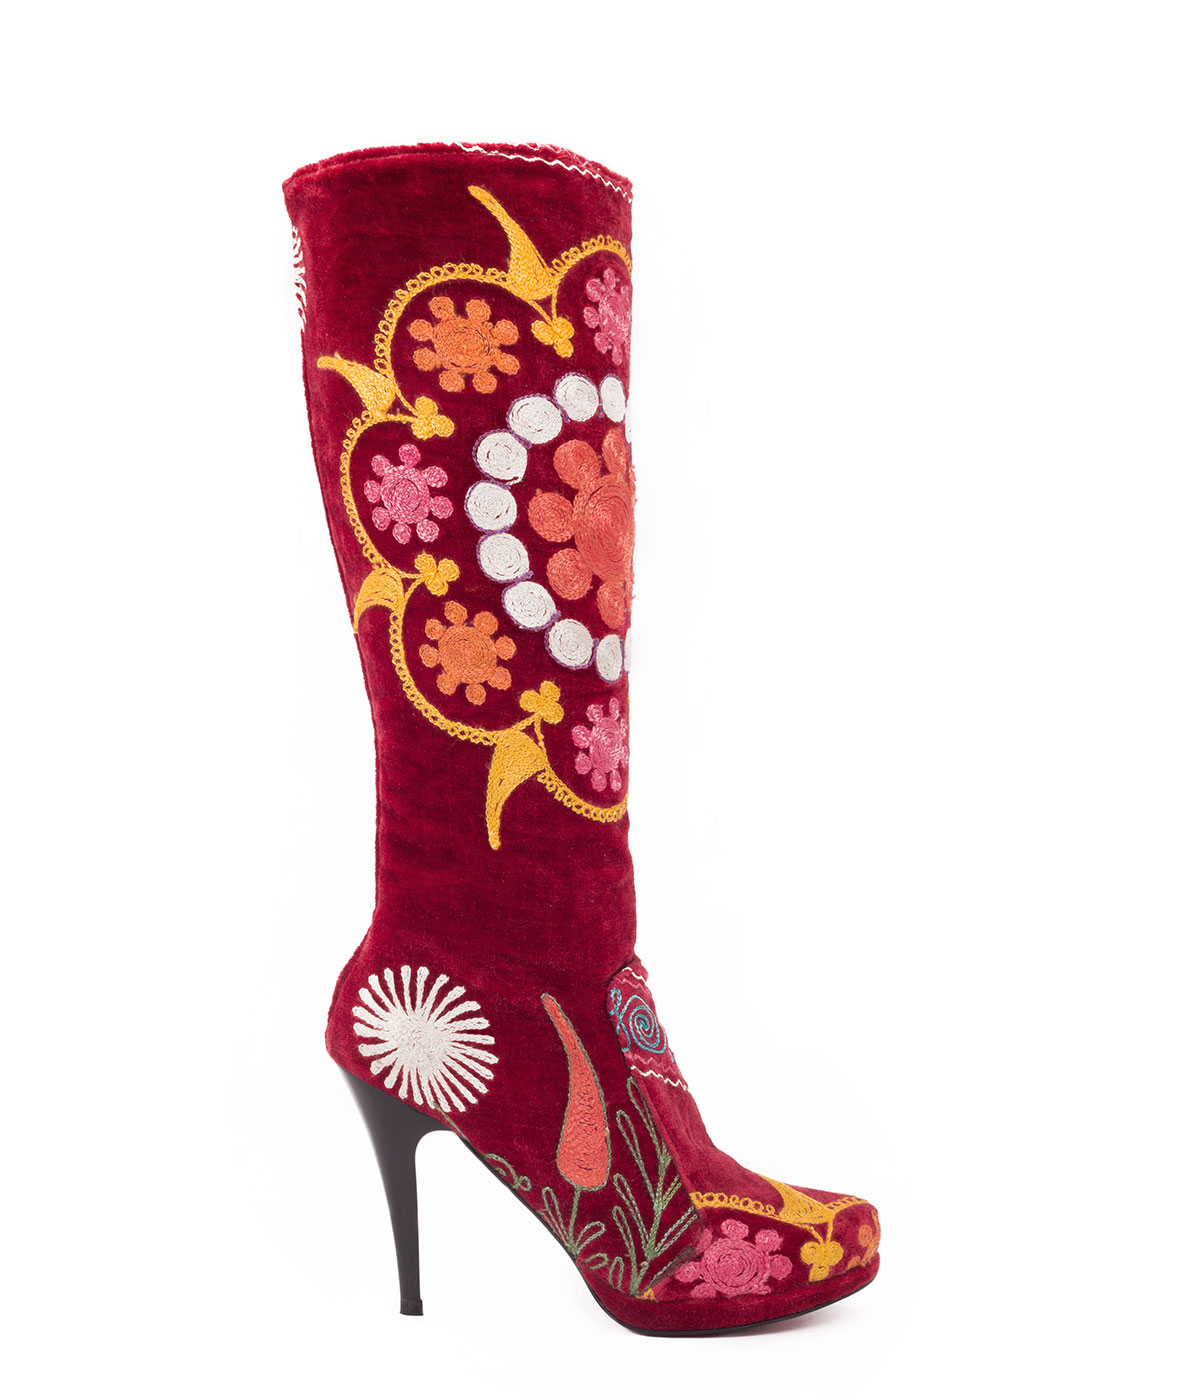 stiletto-red-suzani-boot-a